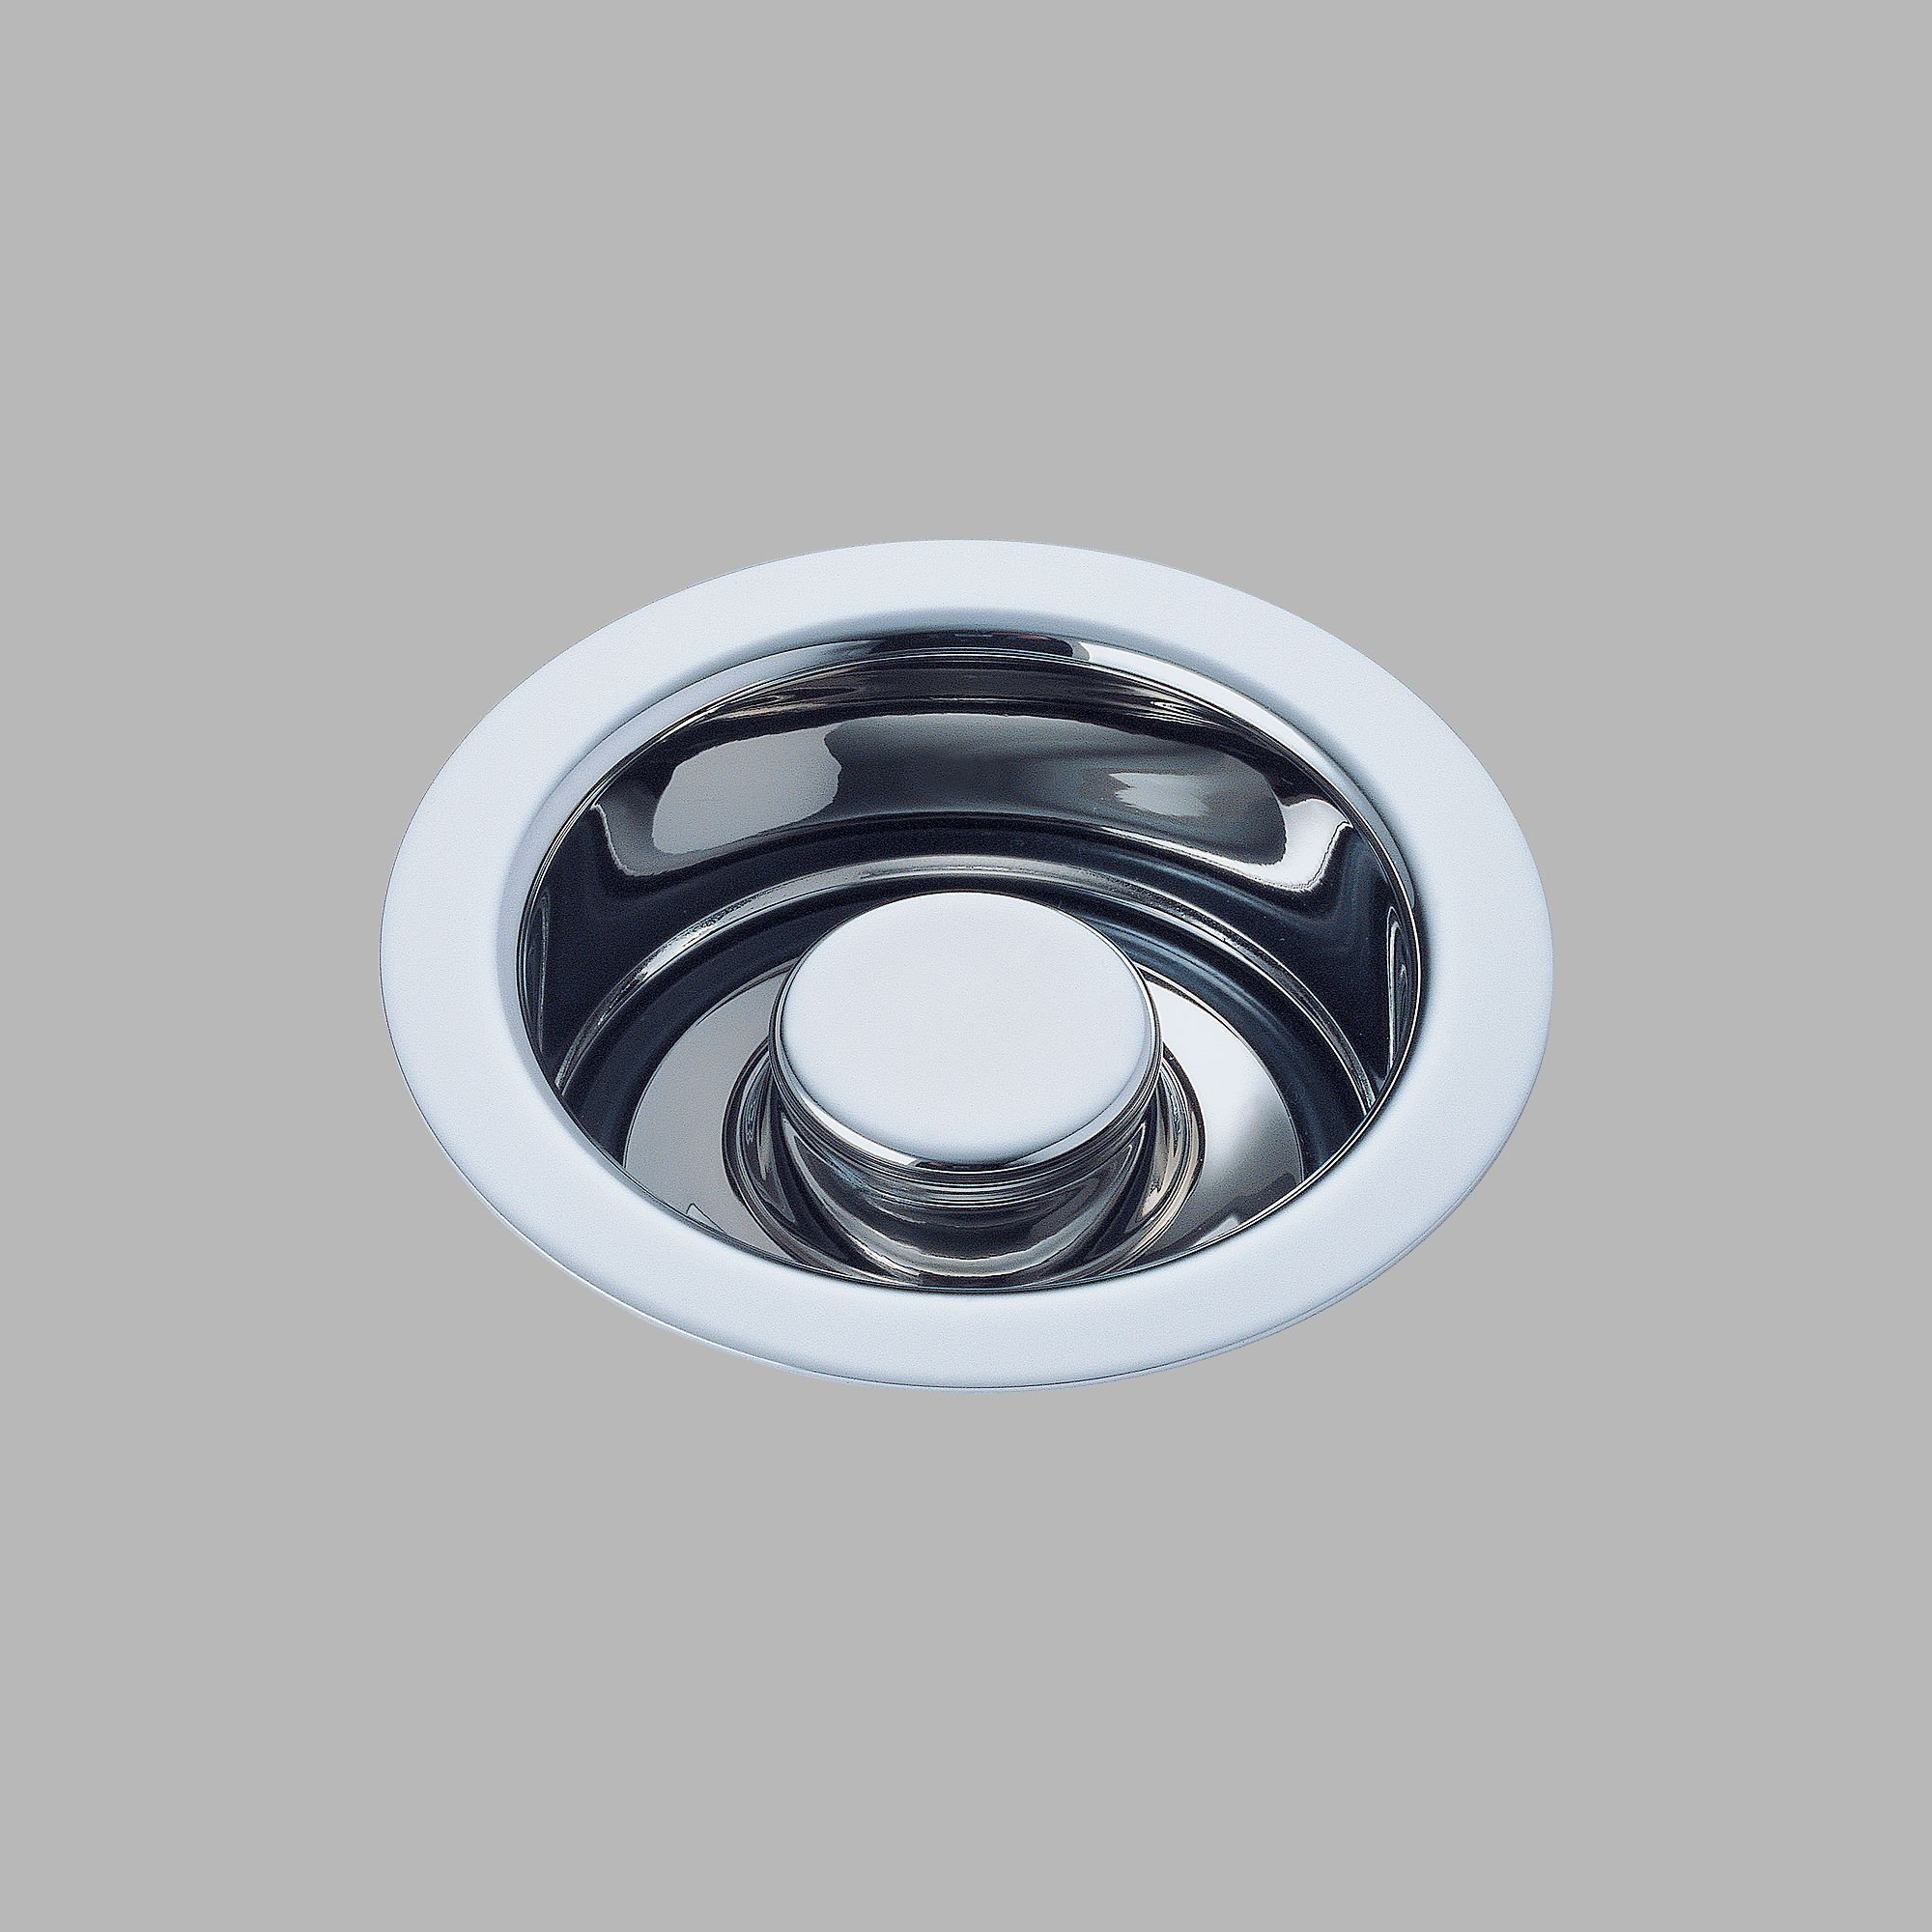 72030 Brizo Disposal and Flange Stopper - Kitchen